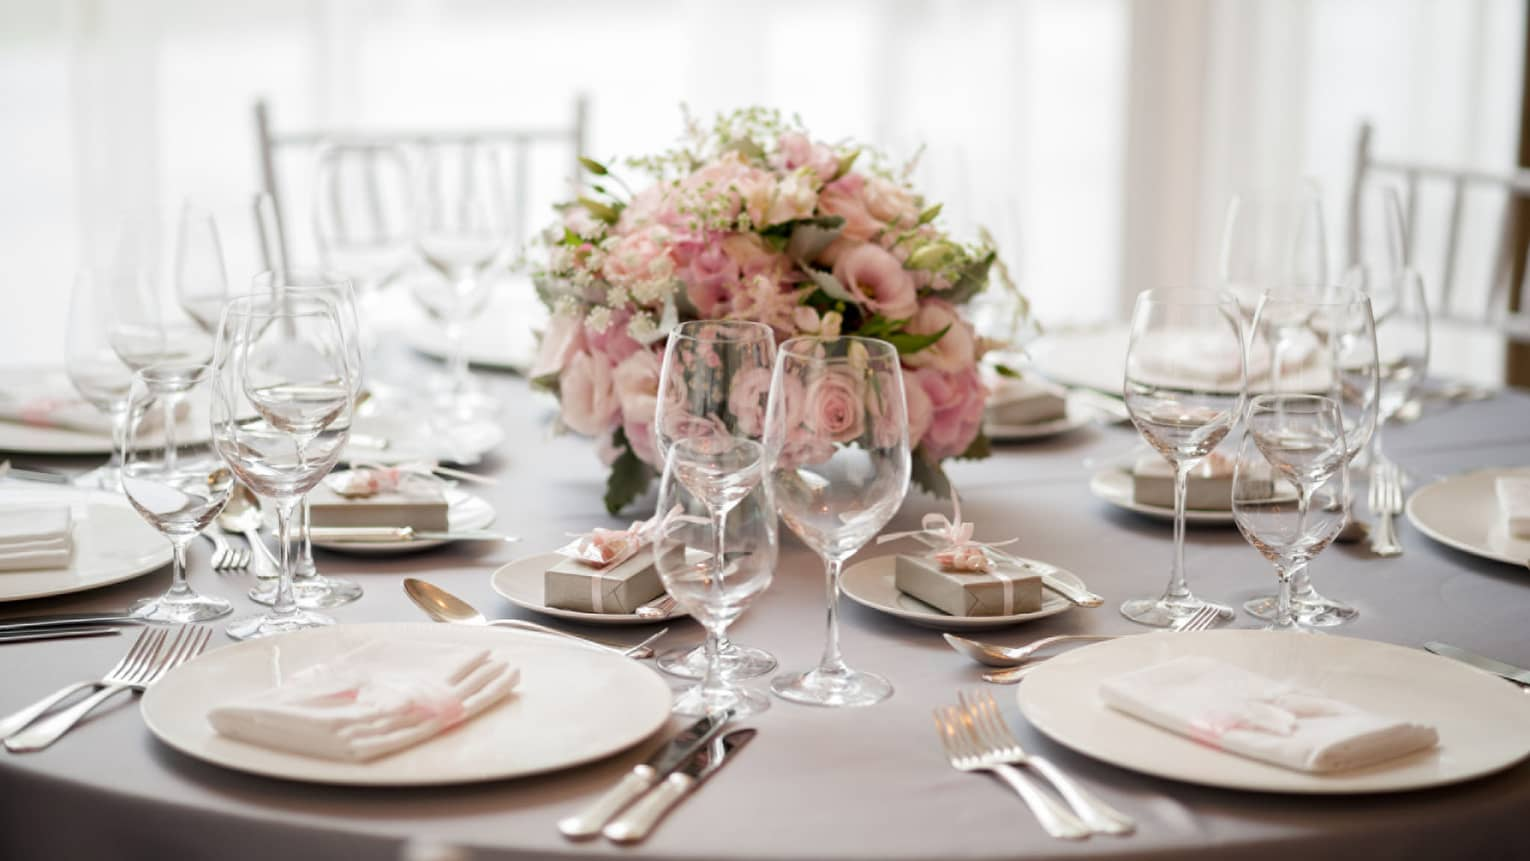 Wedding reception table setting with pink rose floral centrepiece